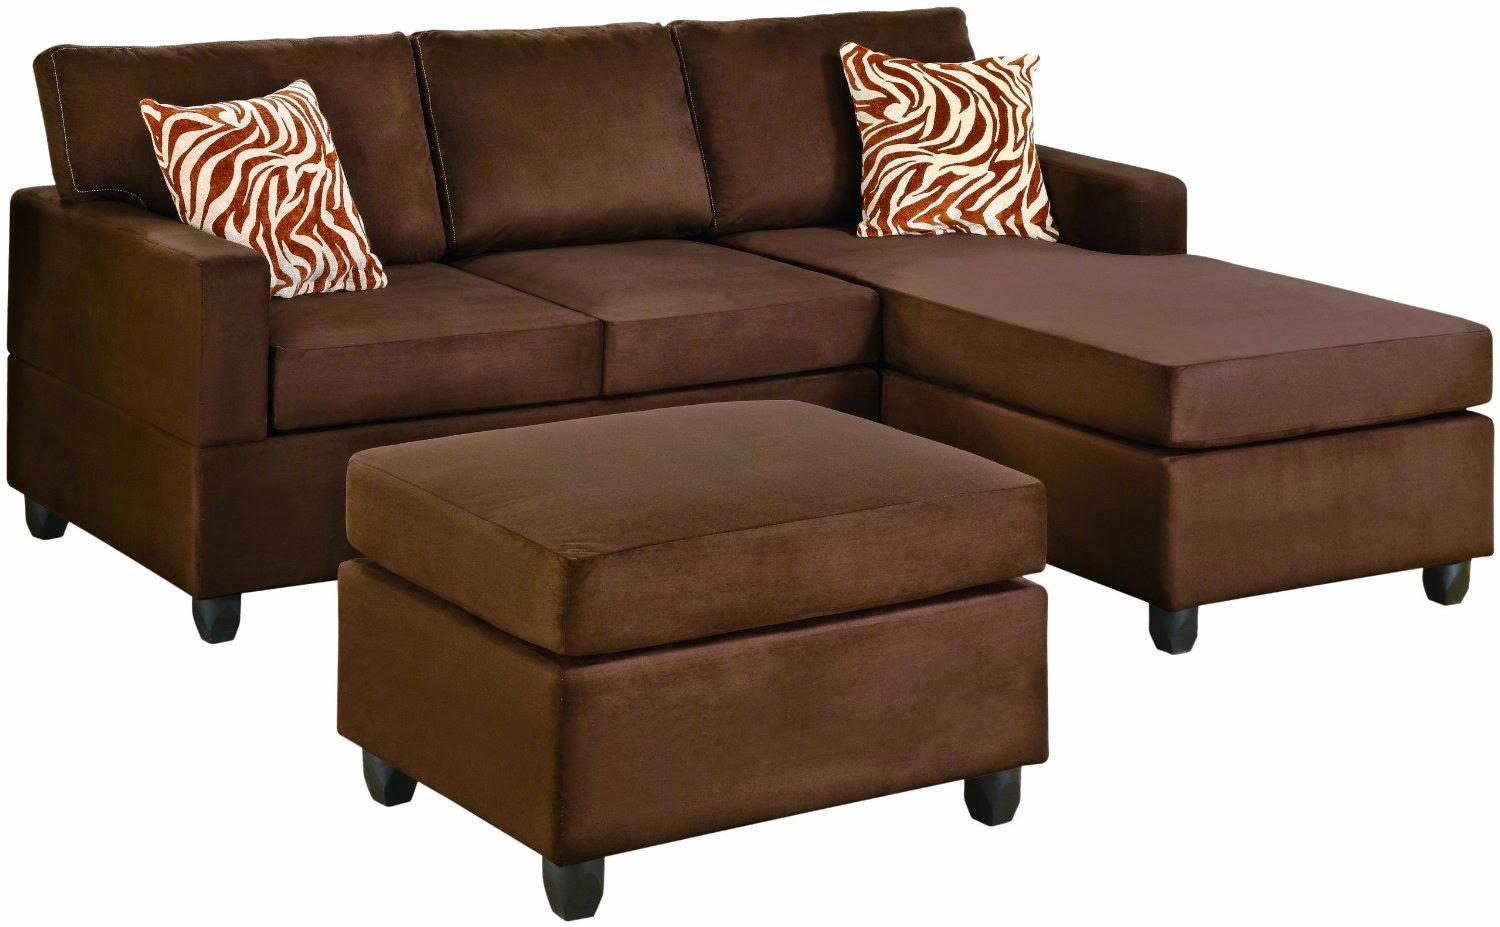 Couch with chaise for Chaise lounge couch set